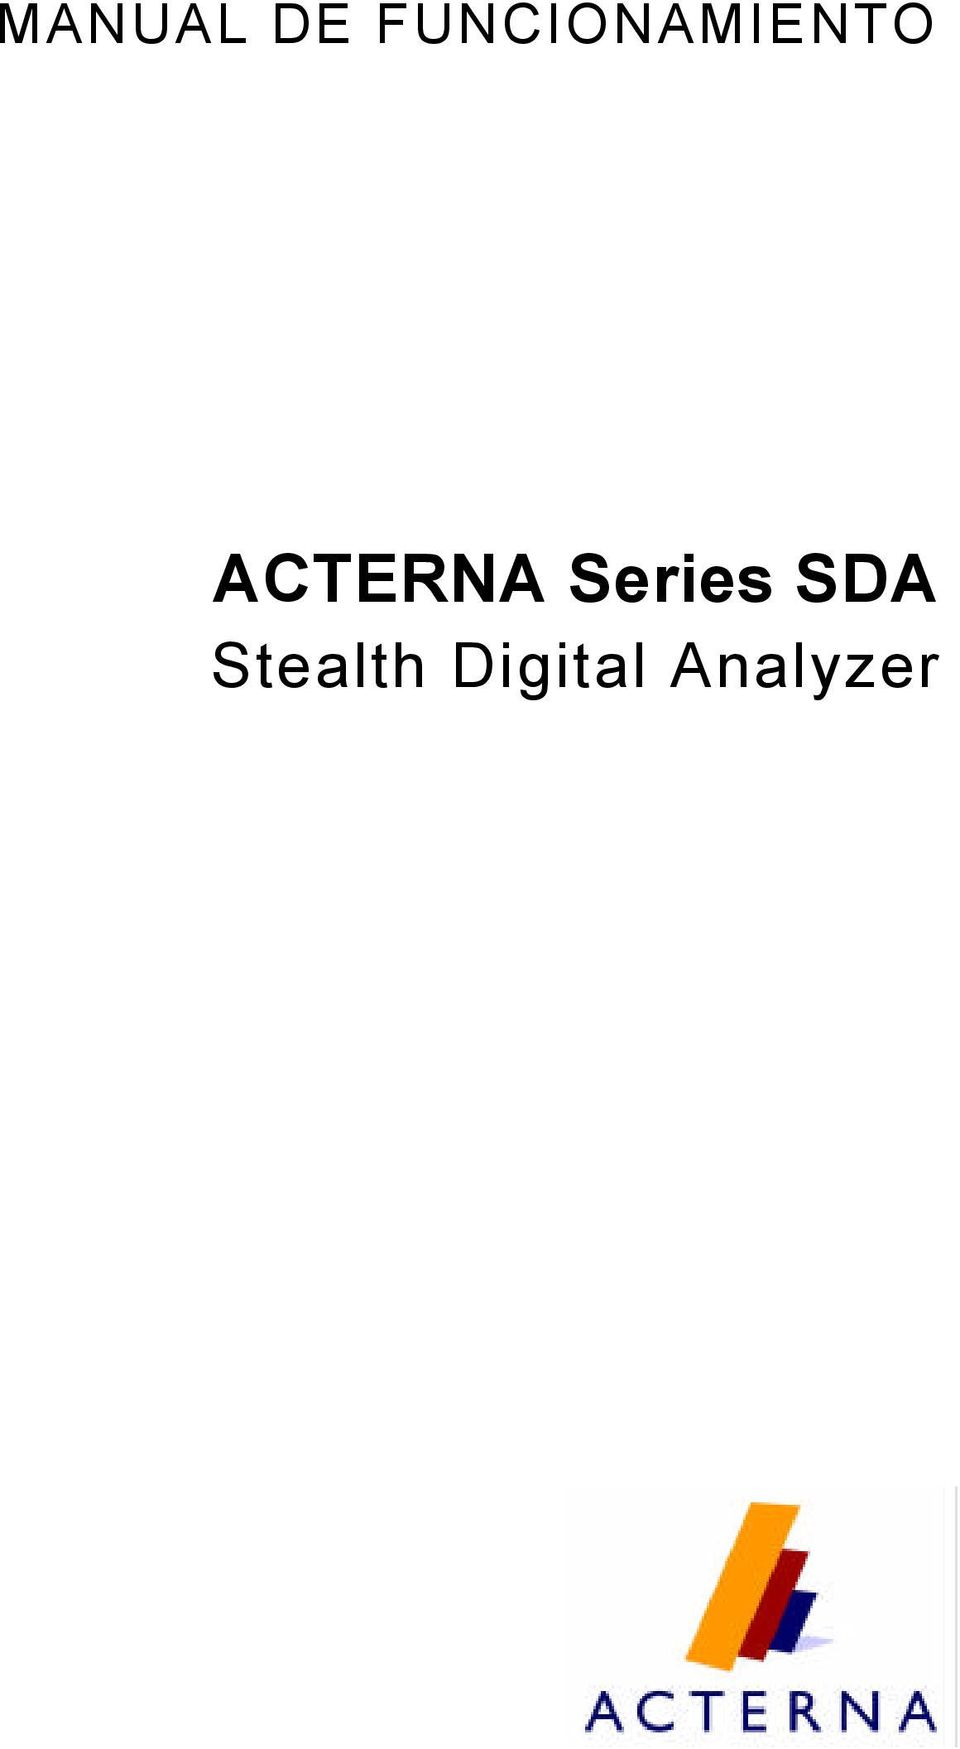 ACTERNA Series